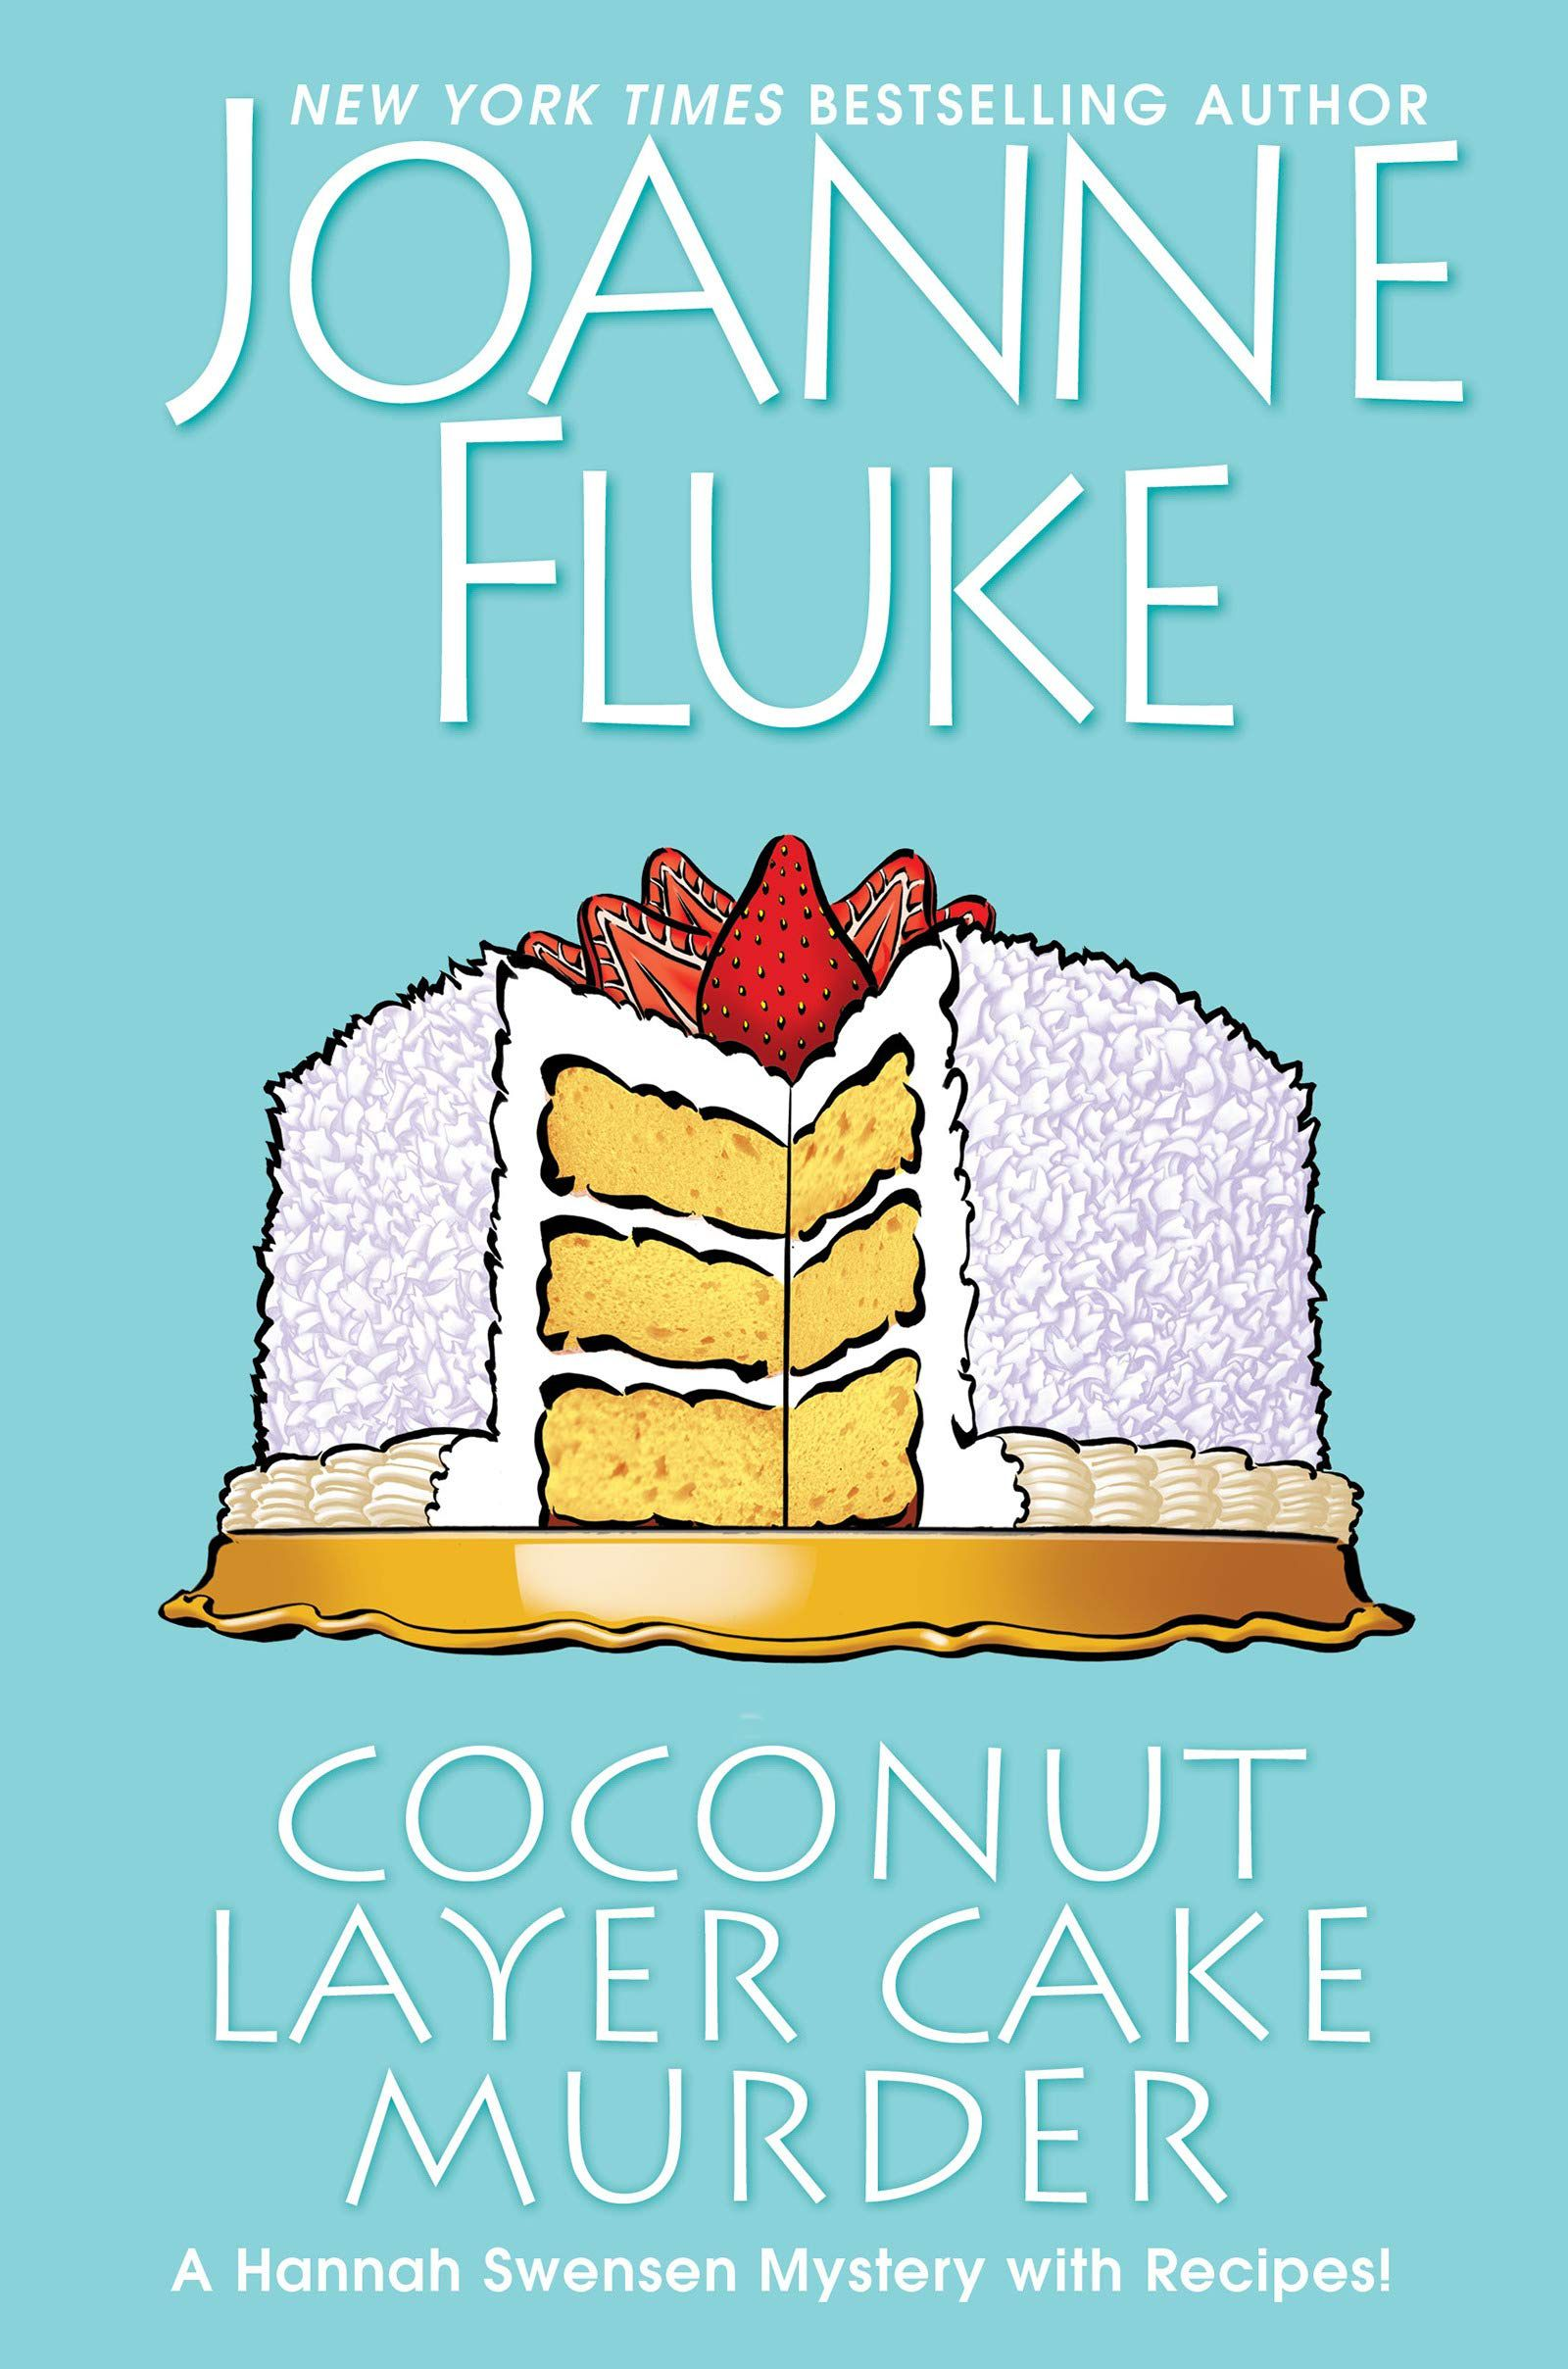 coconut layer cake murder cover